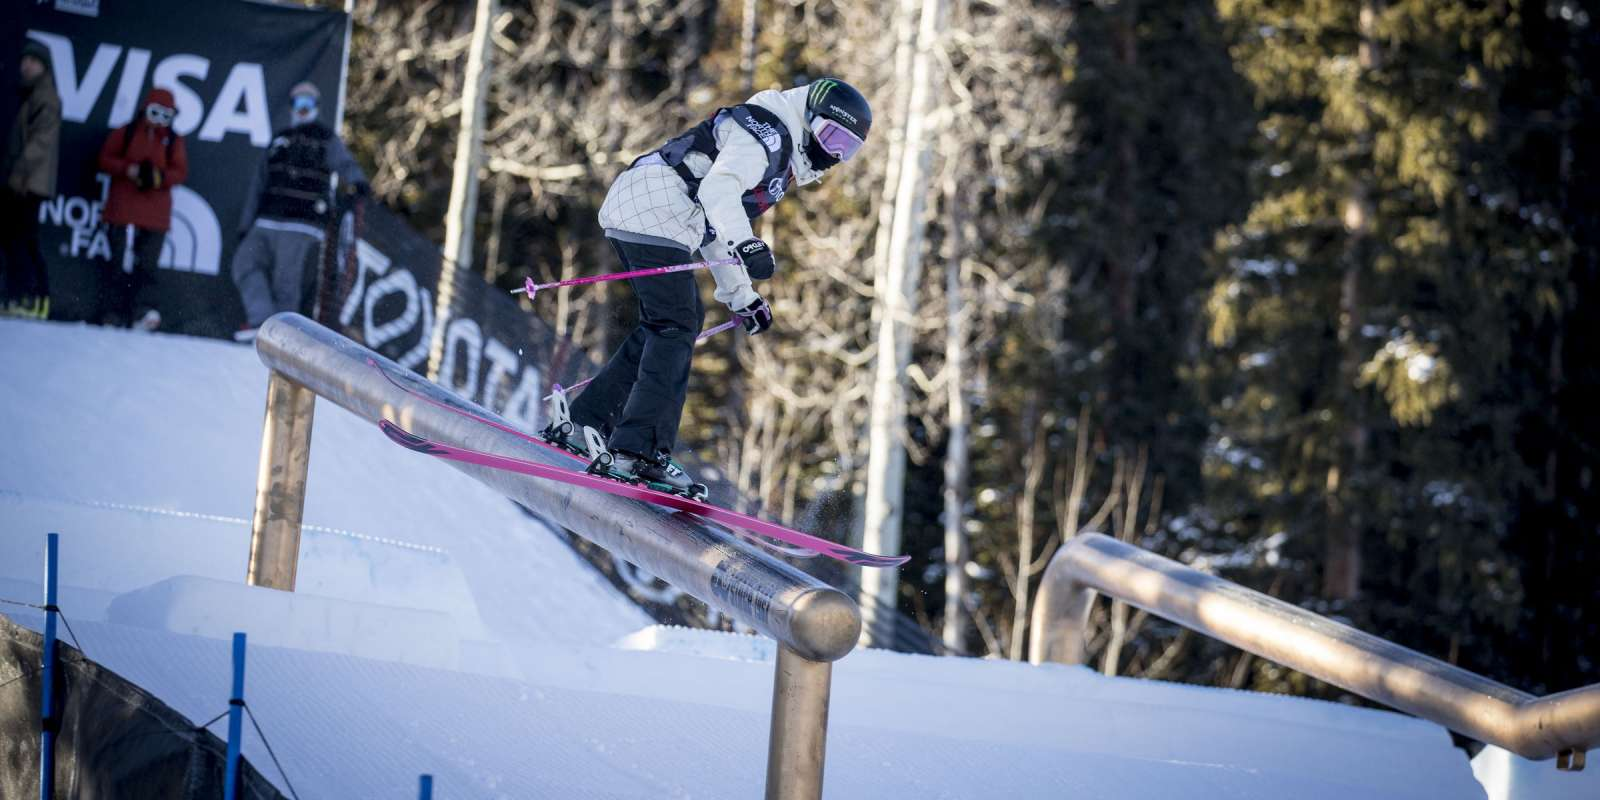 Monster atheletes compete in the Slope Finals Ski in Aspen, Colorado